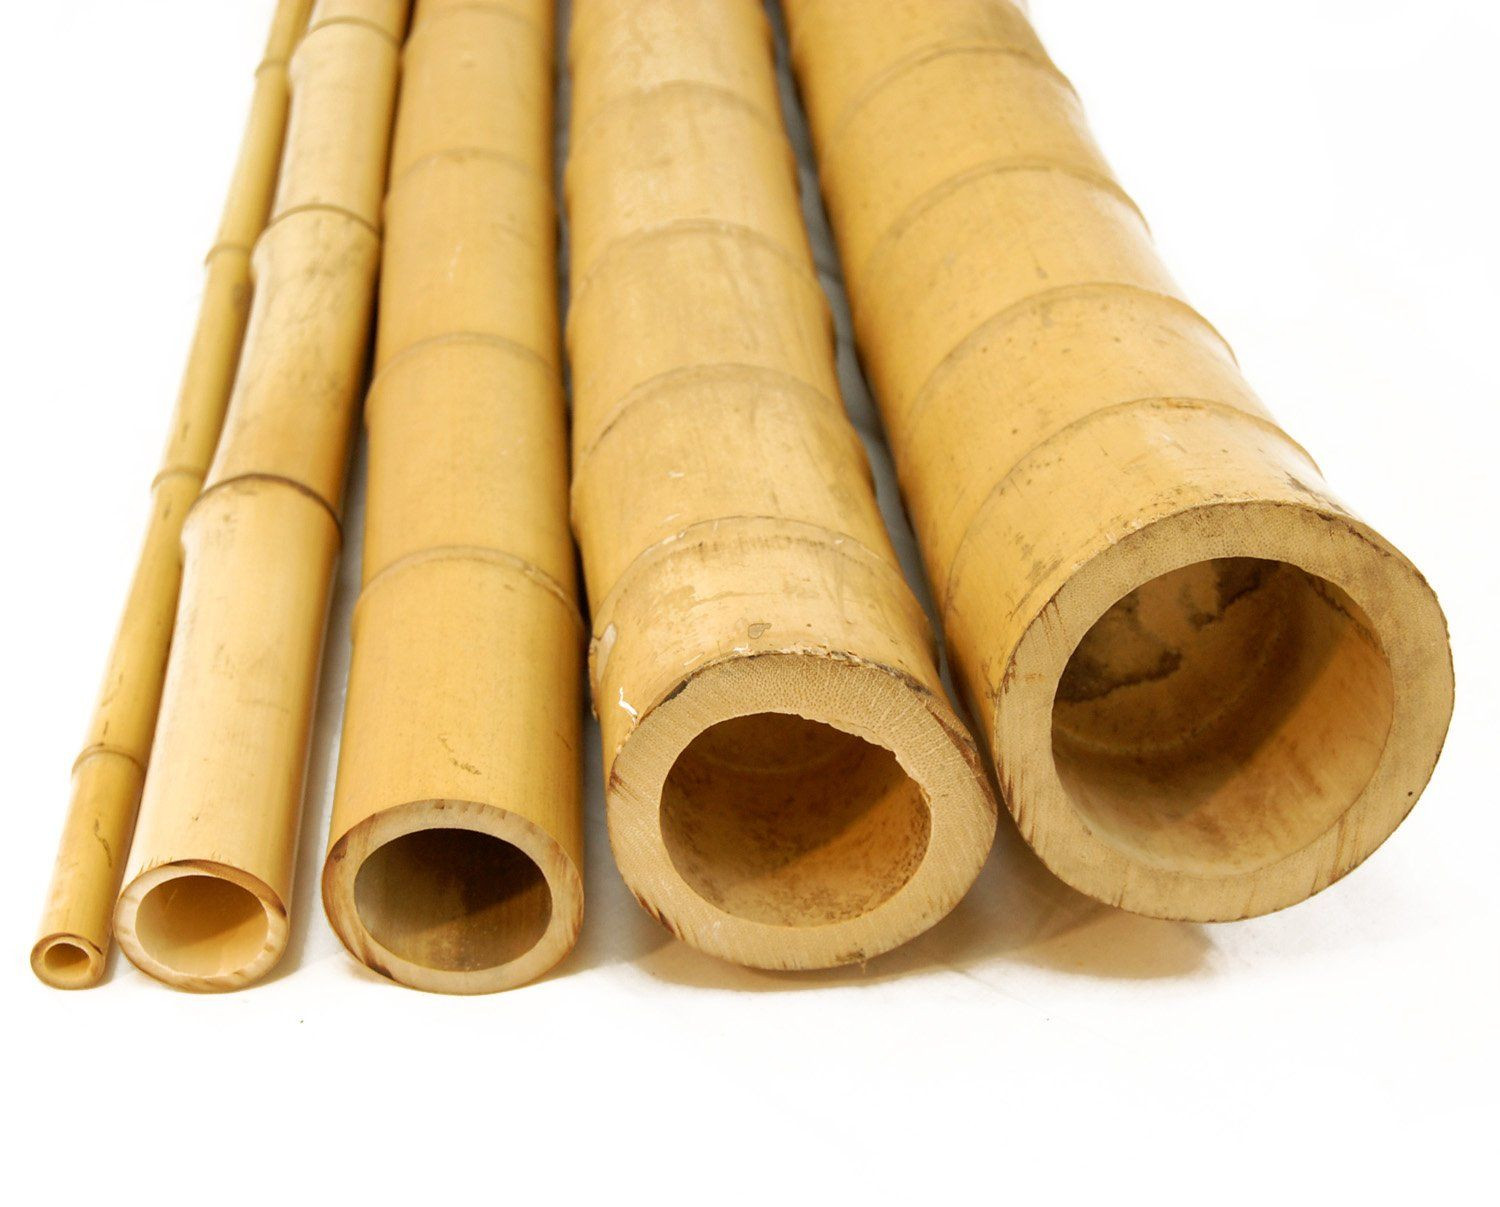 Cheap bamboo poles for construction & building materials High Quality Low Price raw bamboo pole from Vietnam